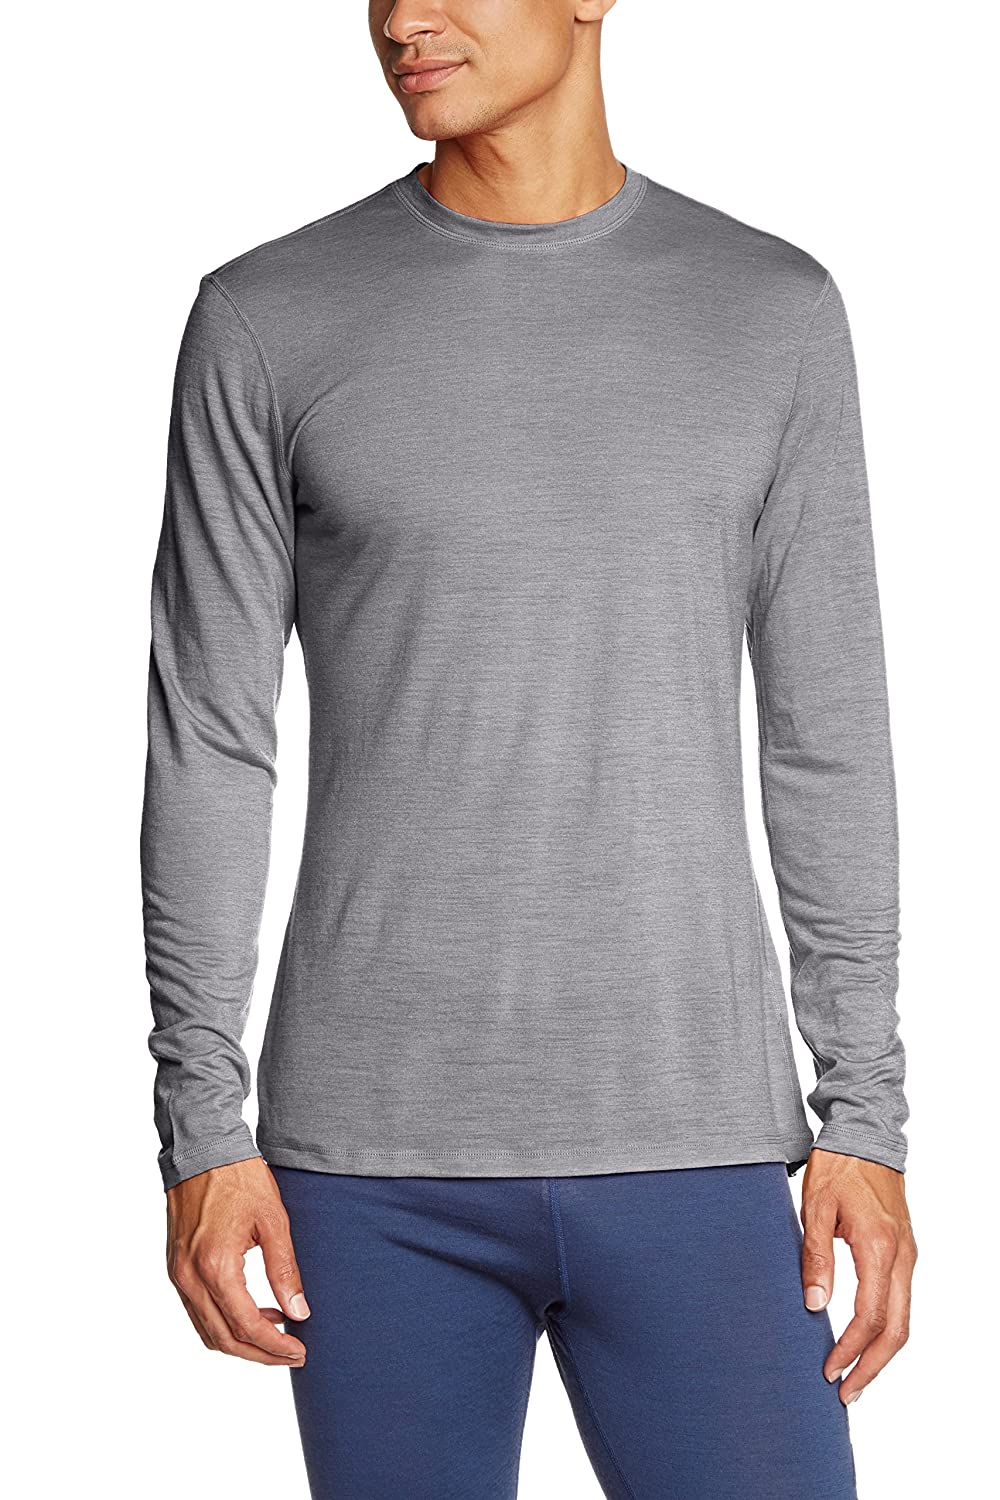 super natural Herren Funktionsshirt Langarm M Base Long Sleeve 140